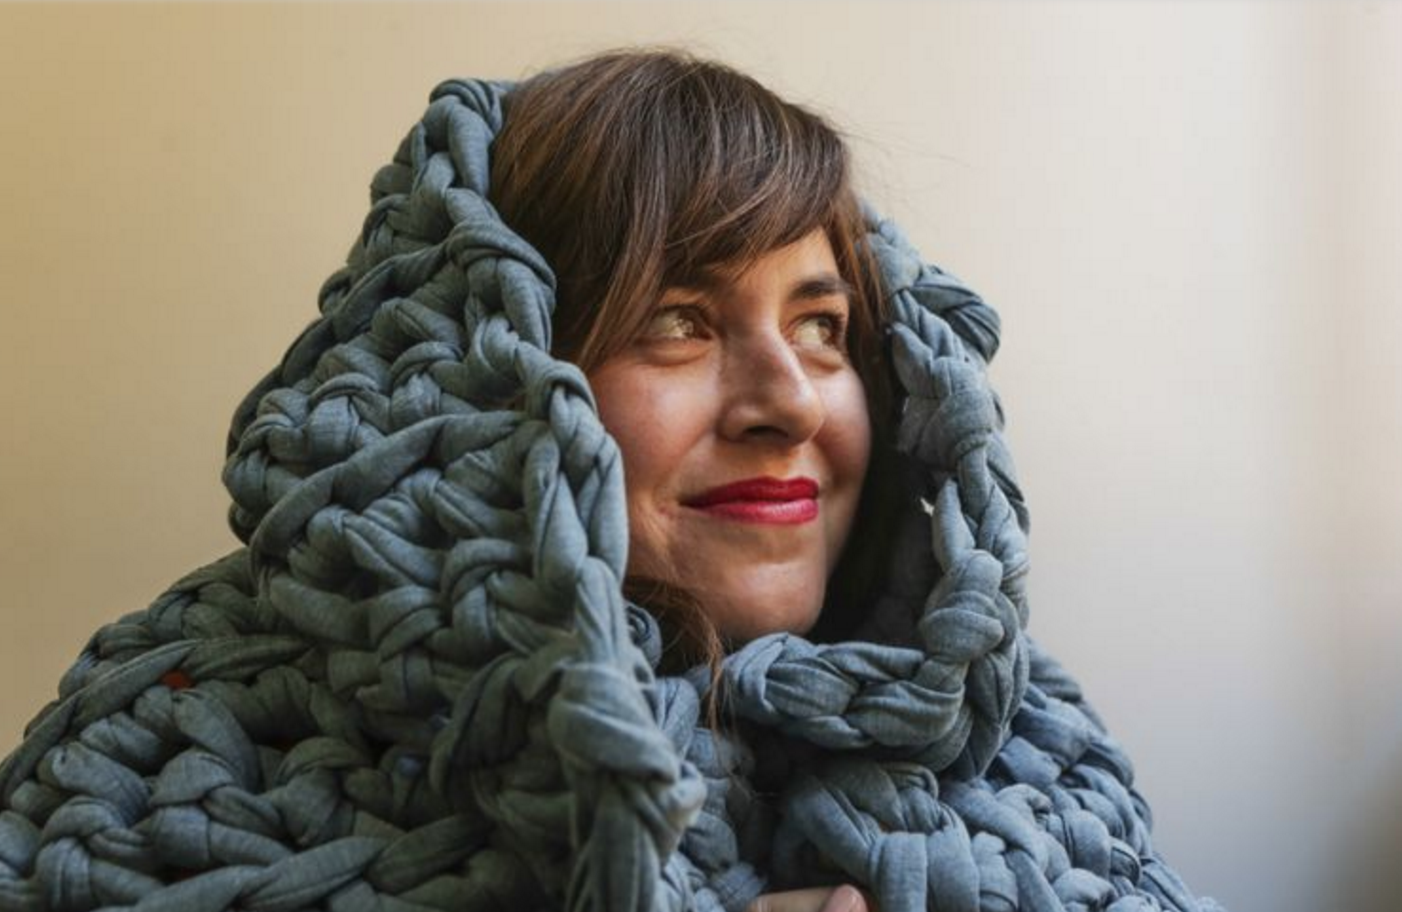 You've heard of weighted blankets? This L.A. mom is perfecting the trend (Los Angeles Times)